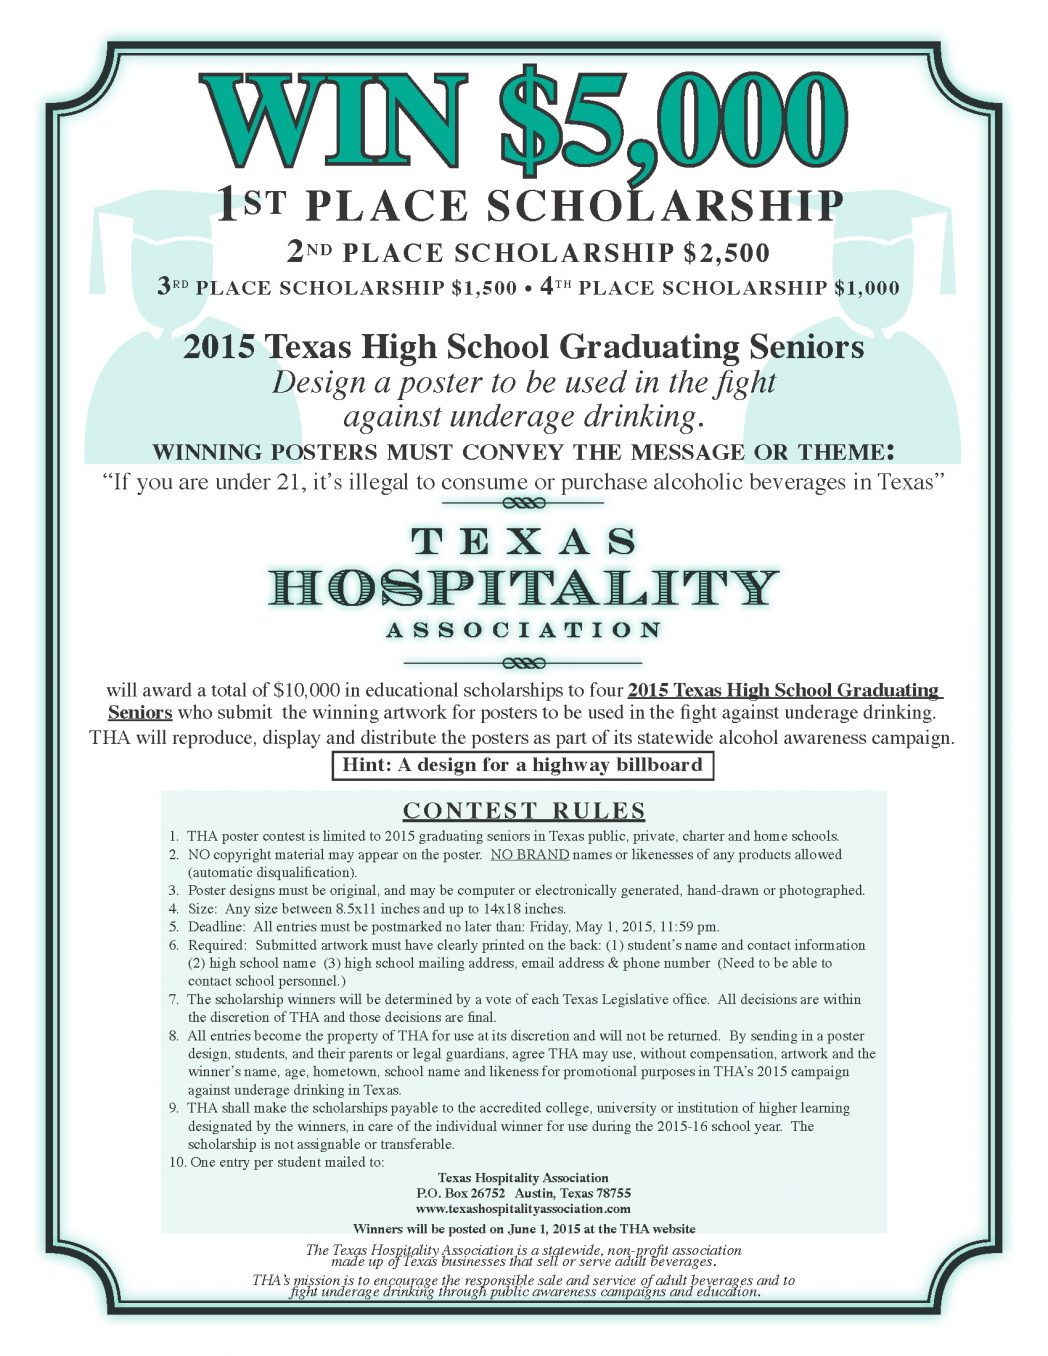 009 Easy Scholarships For High School Seniors Without Essays Research Students No Essay Scholarshi 1048x1356 Stunning In Texas With Required Scholarship College Examples Full